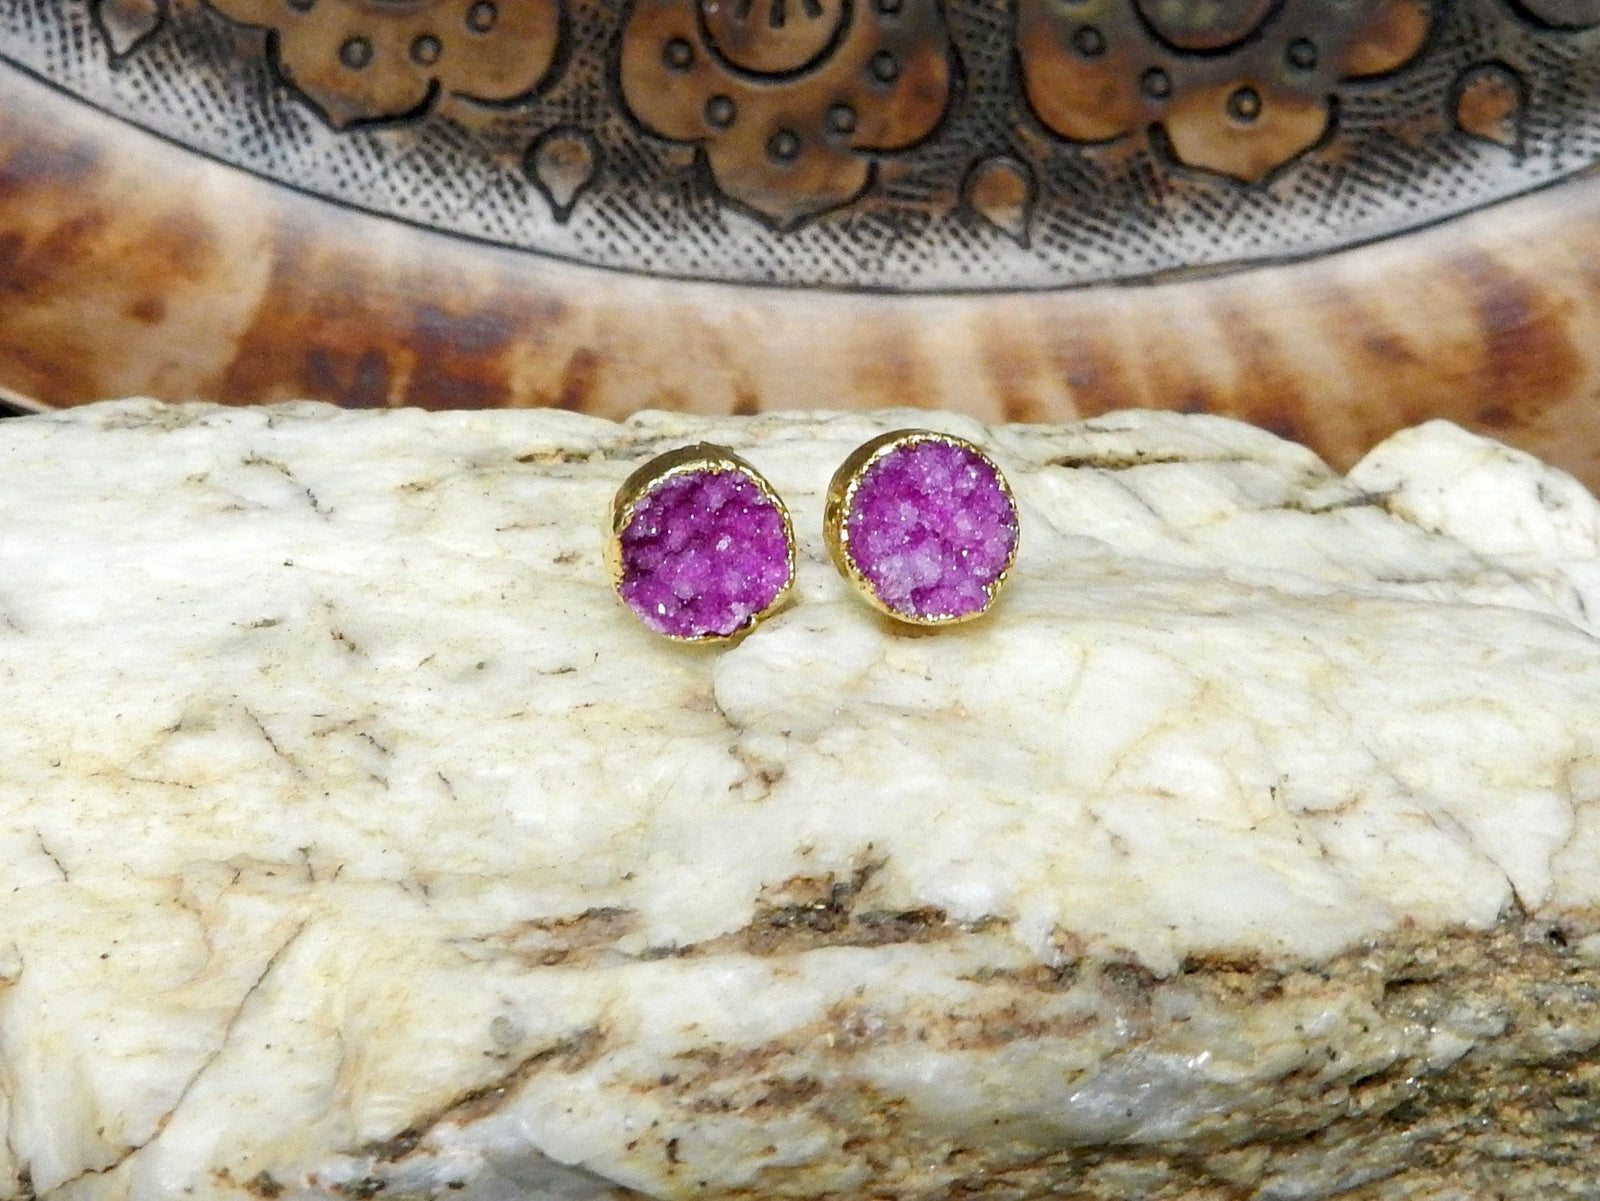 Earrings - Hot Pink Toned Beautiful Round Druzy Stud Earrings In 24k Gold Electroplated (RK114B5-06)